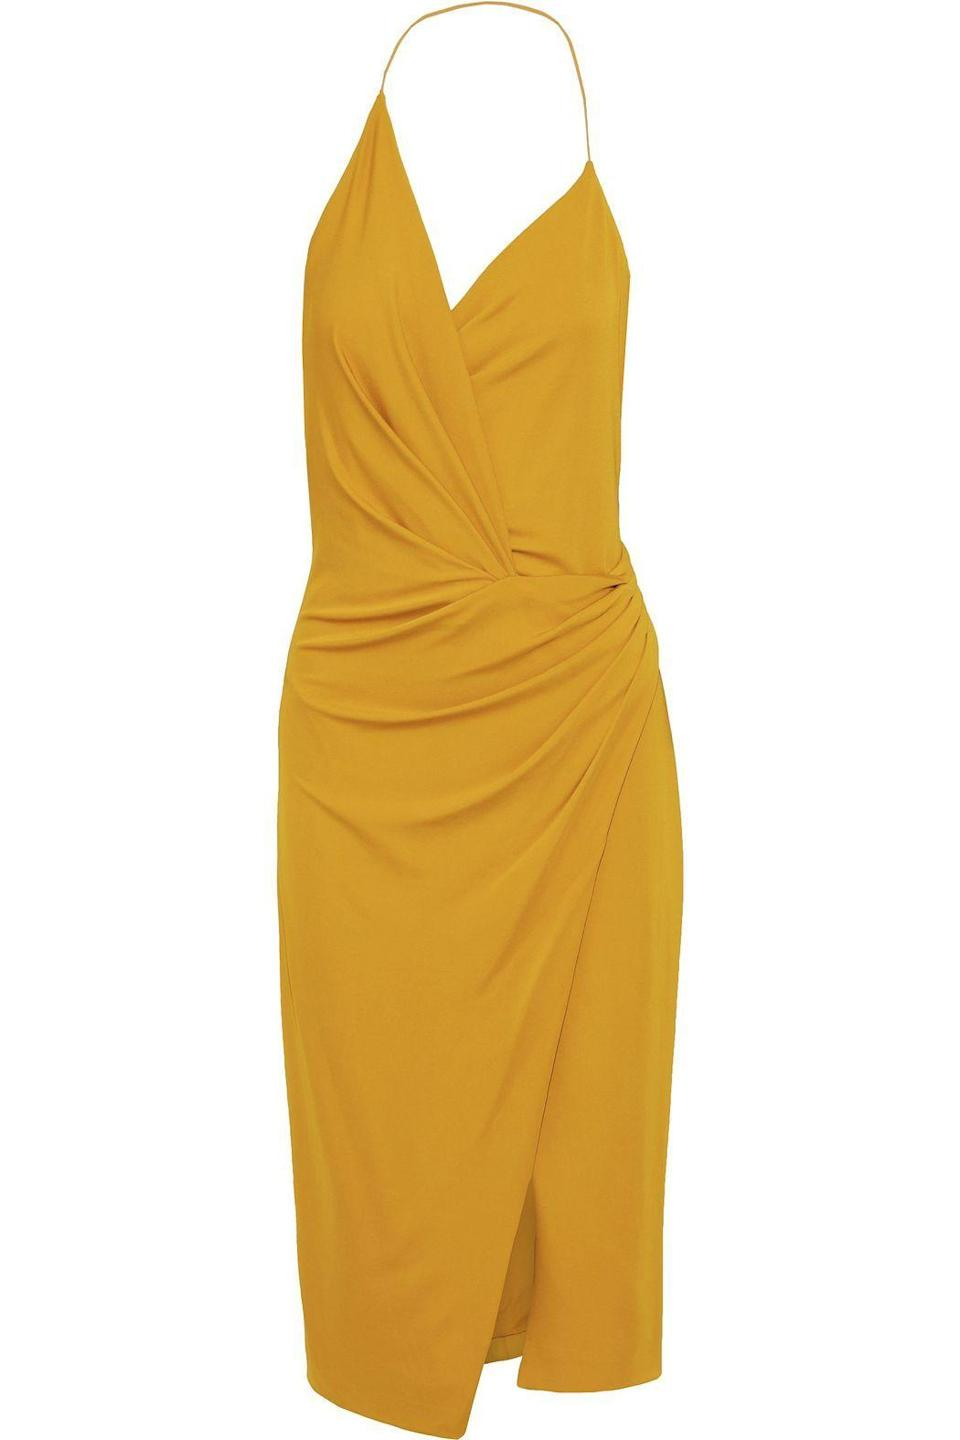 """<p><strong>CUSHNIE</strong></p><p>theoutnet.com</p><p><strong>$328.00</strong></p><p><a href=""""https://go.redirectingat.com?id=74968X1596630&url=https%3A%2F%2Fwww.theoutnet.com%2Fen-gb%2Fshop%2Fproduct%2Fcushnie%2Fdresses%2Fmidi-dress%2Fwrap-effect-stretch-jersey-halterneck-dress%2F665933304664404&sref=https%3A%2F%2Fwww.elle.com%2Ffashion%2Fshopping%2Fg33595007%2Fthe-outnet-clearance-summer-2020-sale%2F"""" rel=""""nofollow noopener"""" target=""""_blank"""" data-ylk=""""slk:Shop Now"""" class=""""link rapid-noclick-resp"""">Shop Now</a></p>"""